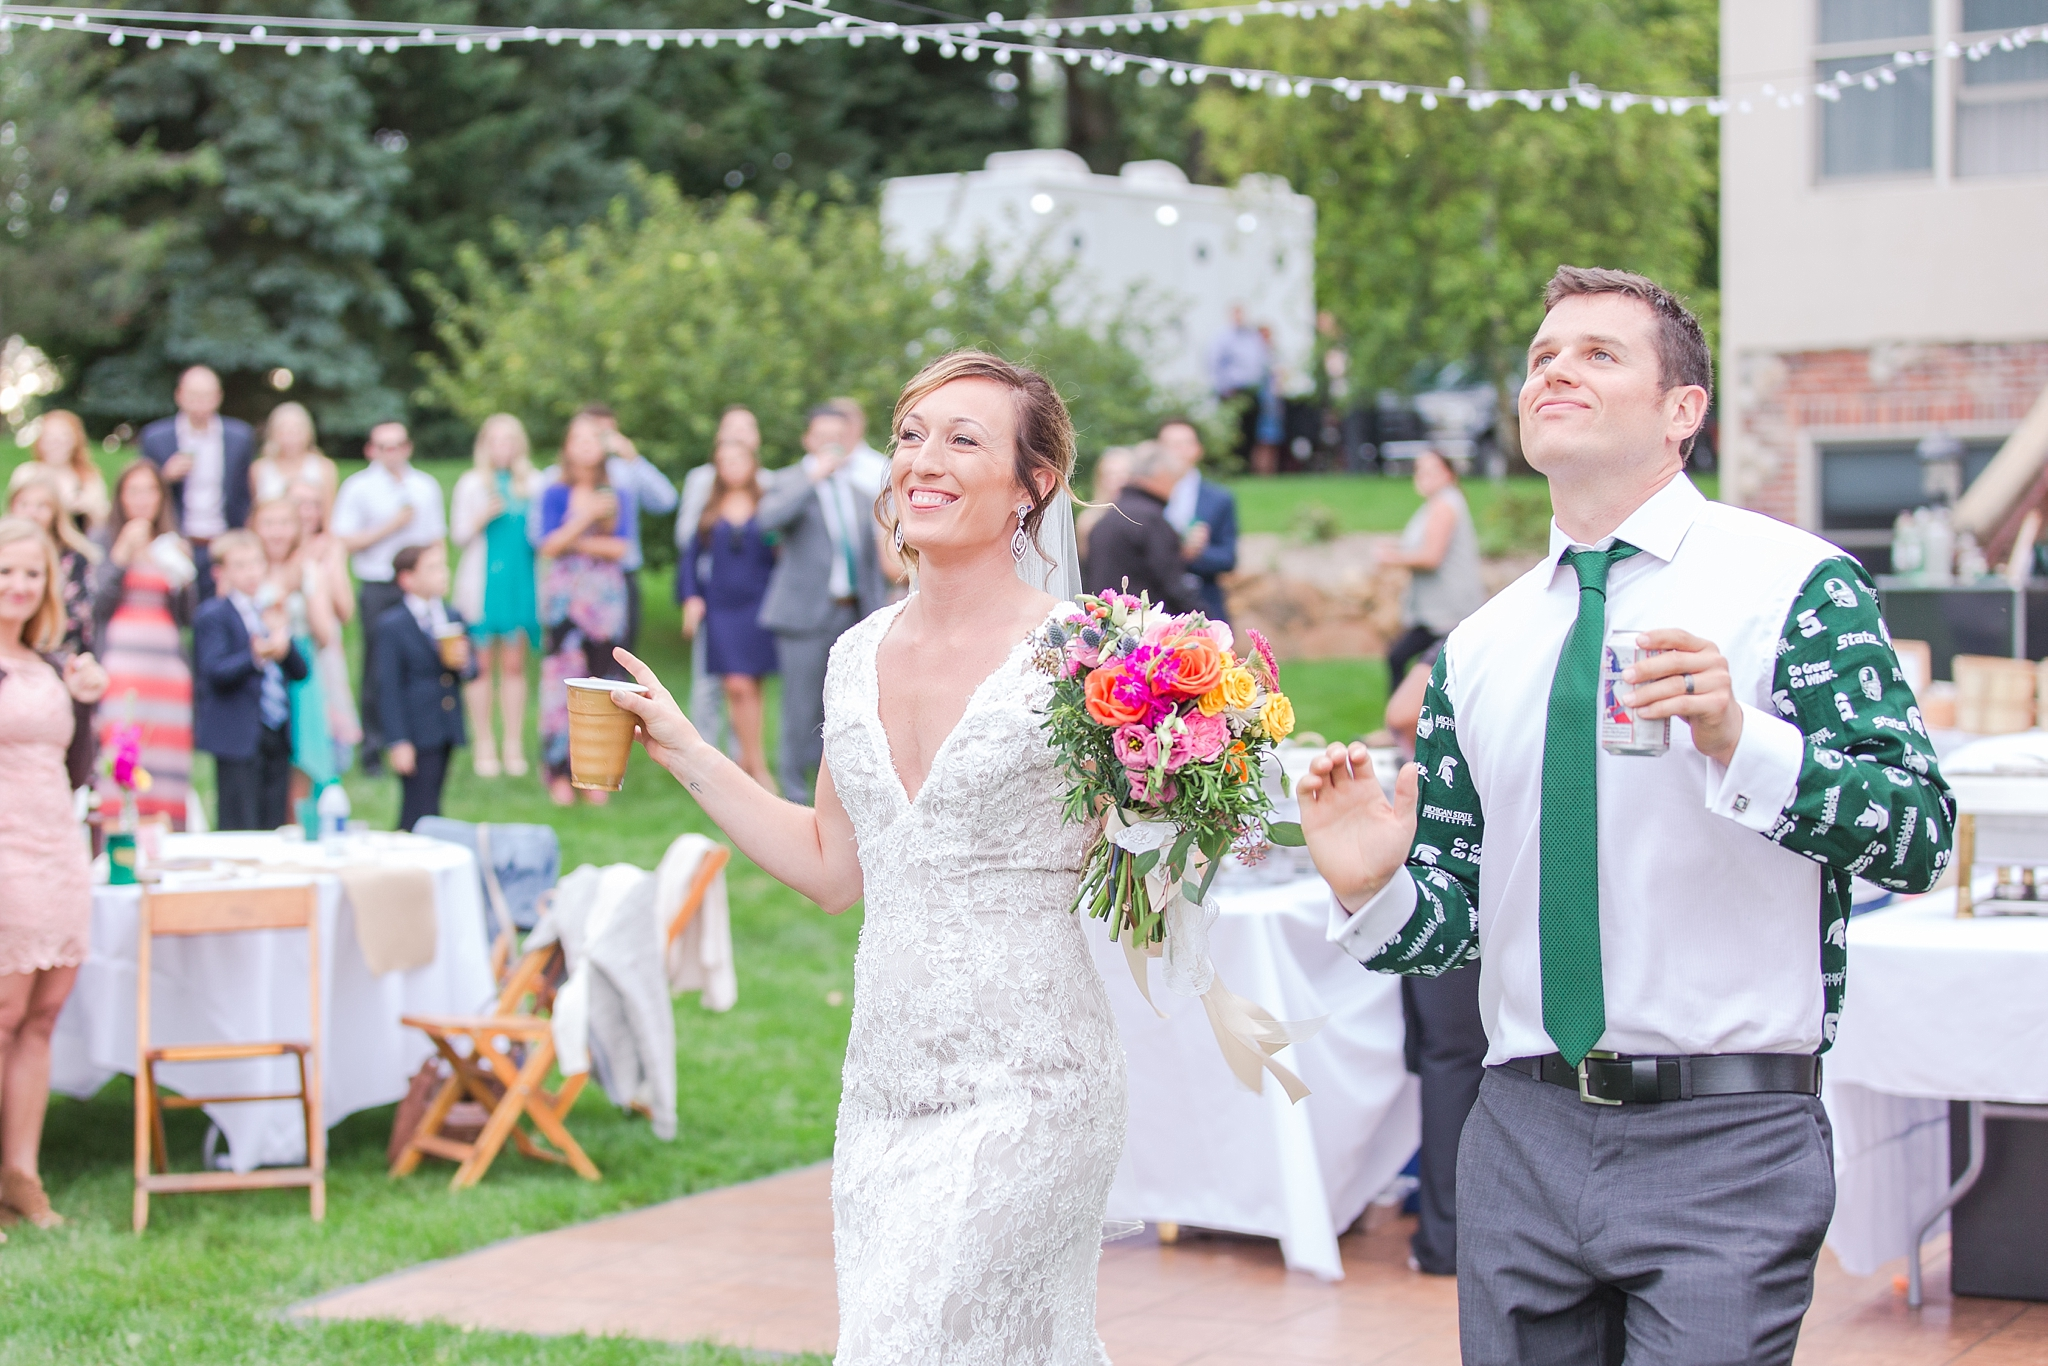 romantic-artful-candid-wedding-photos-in-detroit-lansing-ann-arbor-northern-michigan-and-chicago-by-courtney-carolyn-photography_0088.jpg